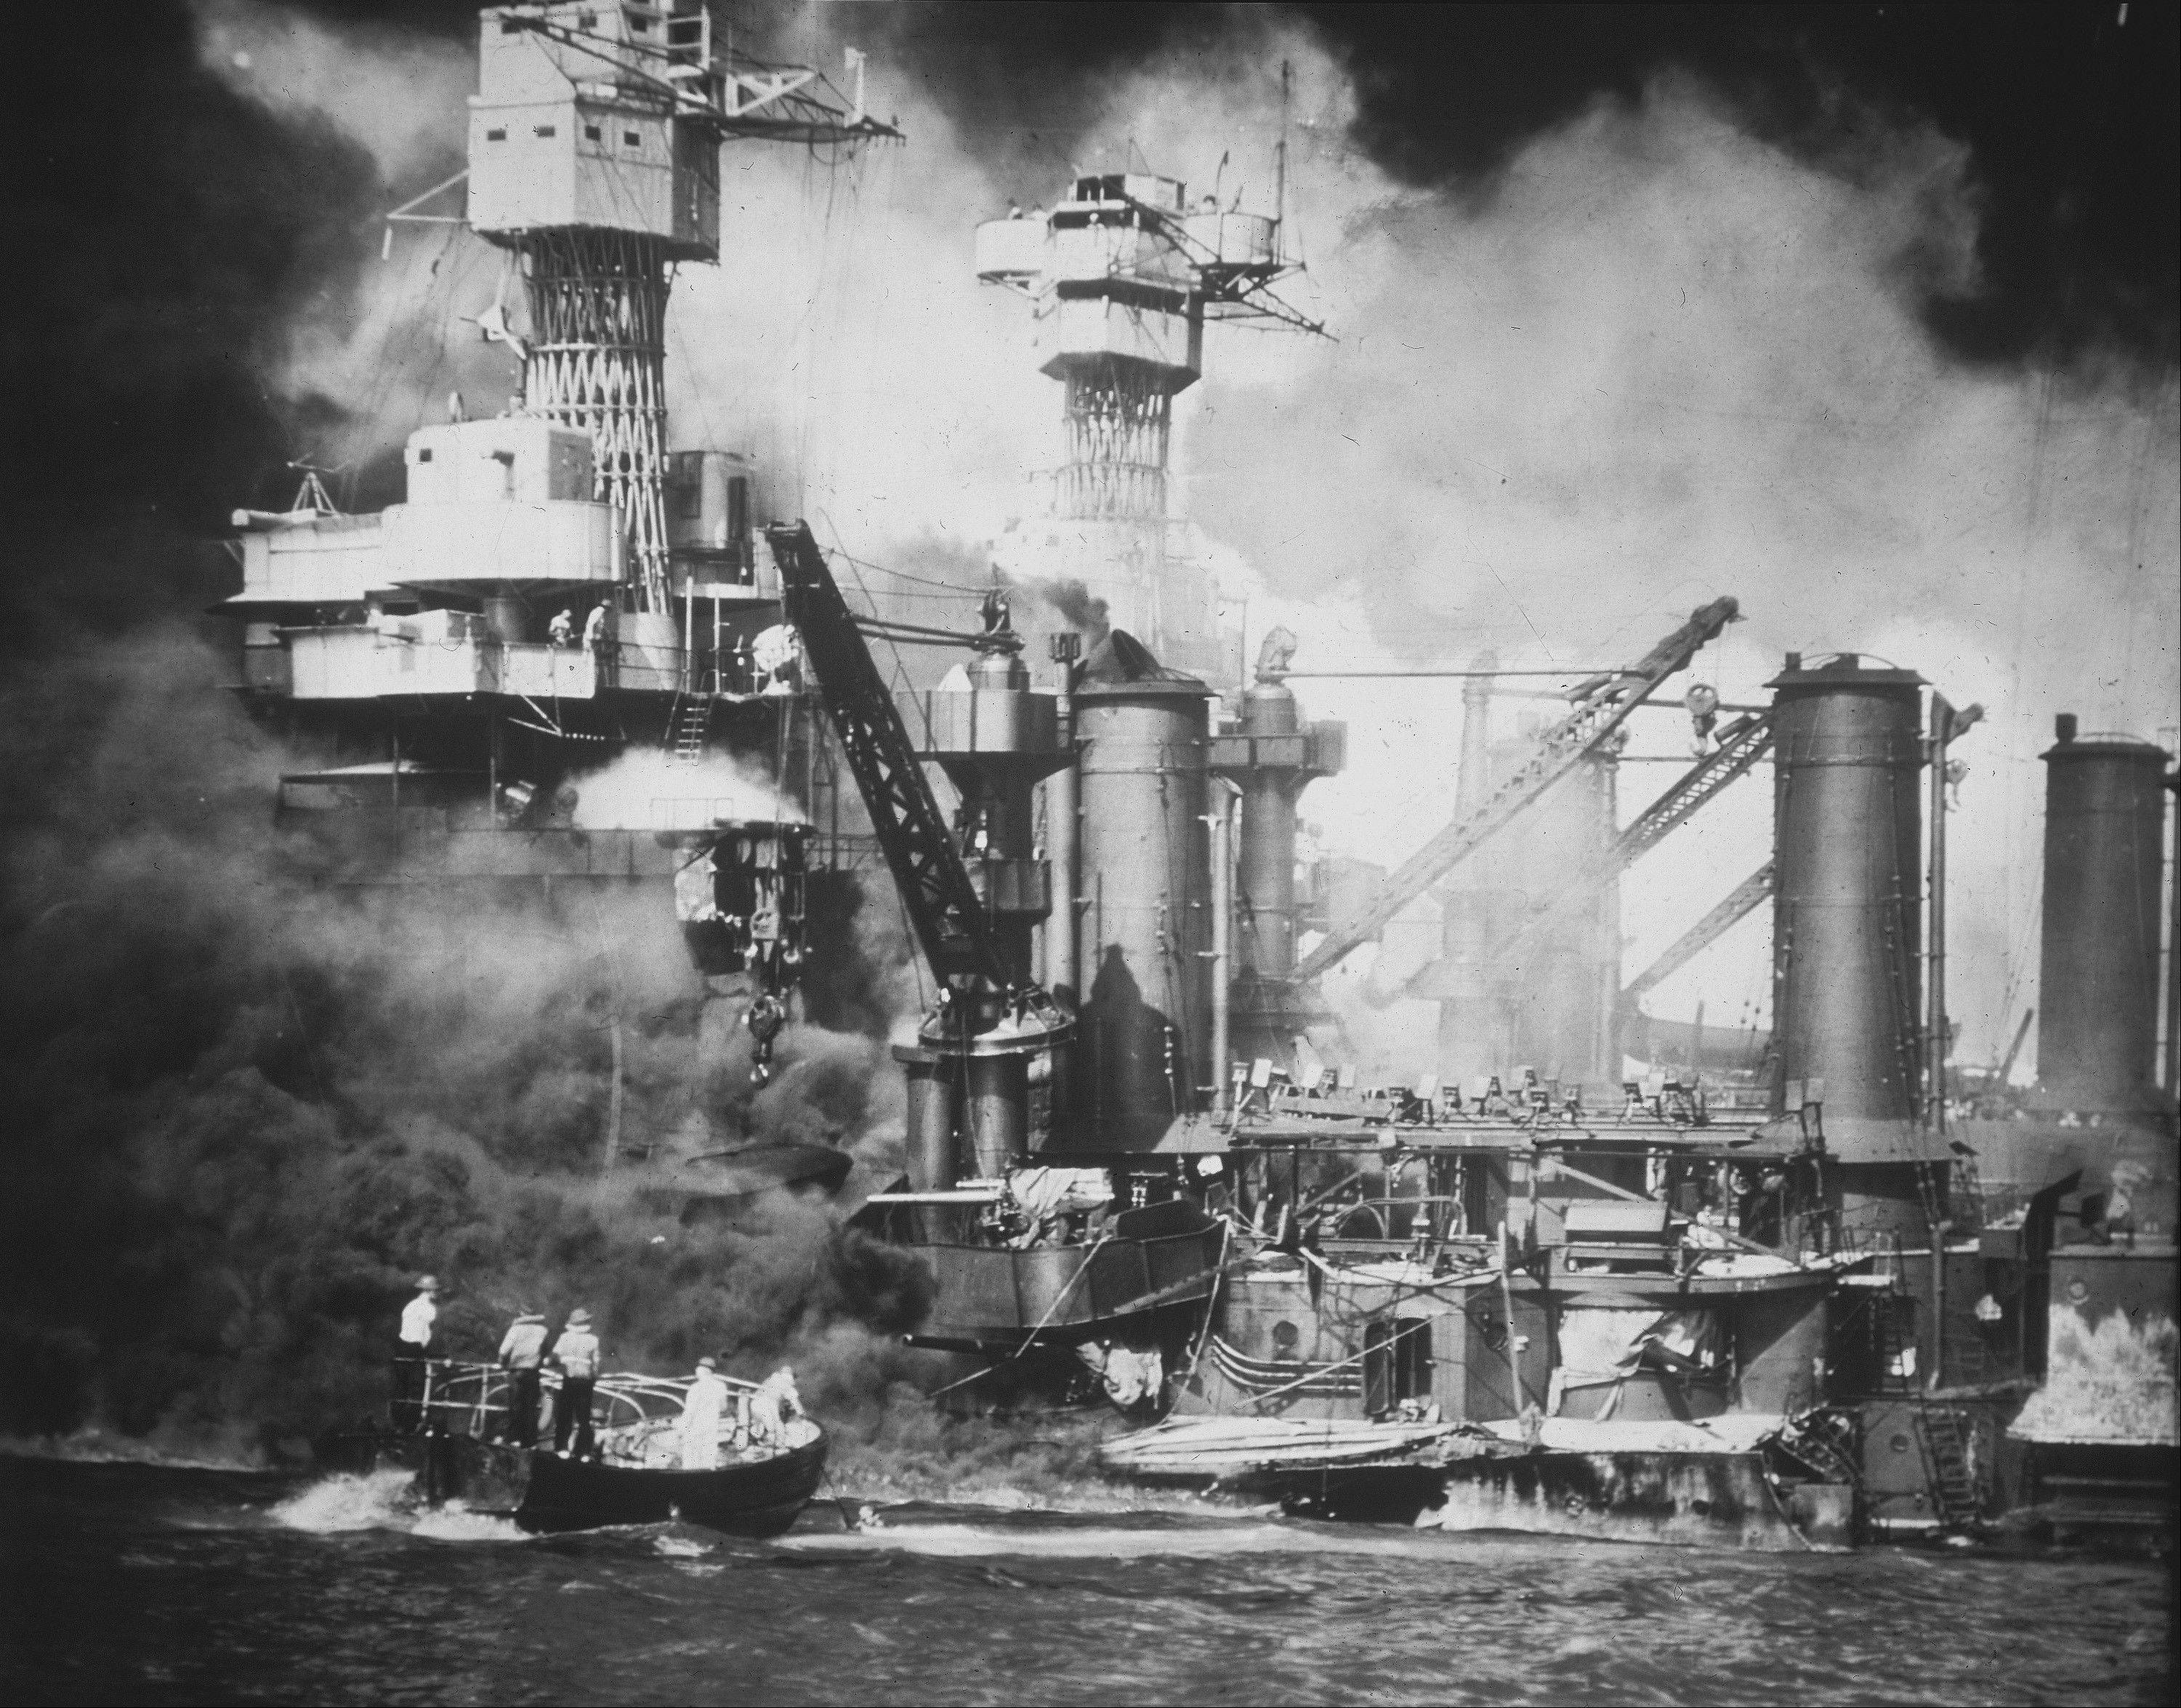 In this U.S. Navy file photo, a small boat rescues a USS West Virginia crew member from the water after the Japanese bombing of Pearl Harbor, Hawaii on Dec. 7, 1941 during World War II. Two men can be seen on the superstructure, upper center. The mast of the USS Tennessee is beyond the burning West Virginia.